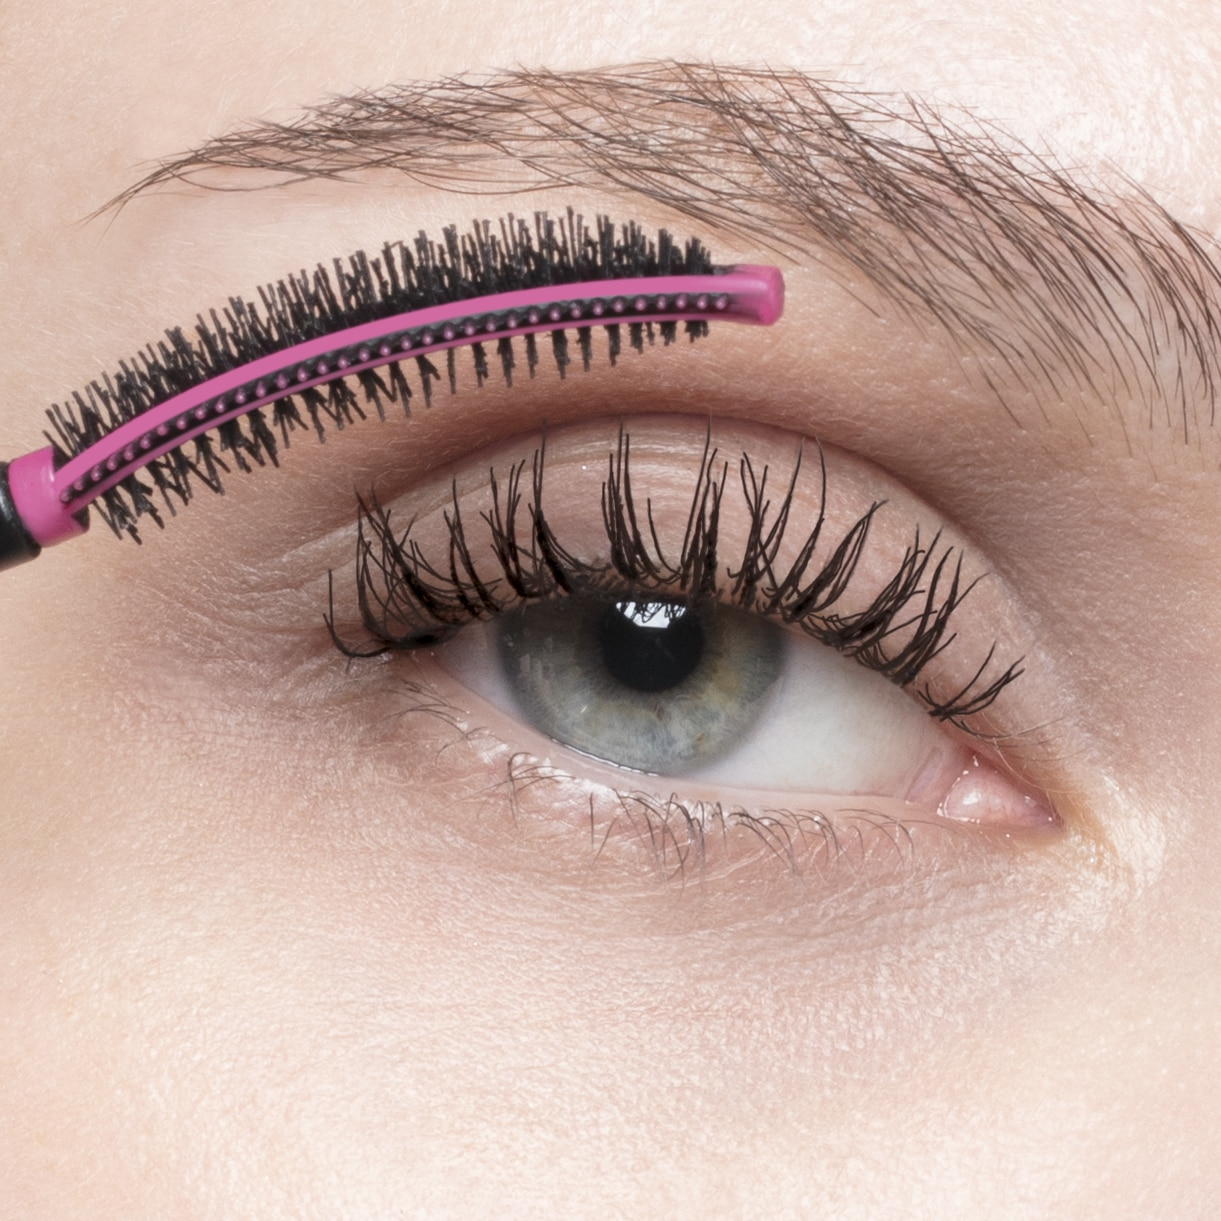 MASCARA VOLUME EFFECT FAUX CILS THE CURLER (MASCARA DE PESTAÑAS)